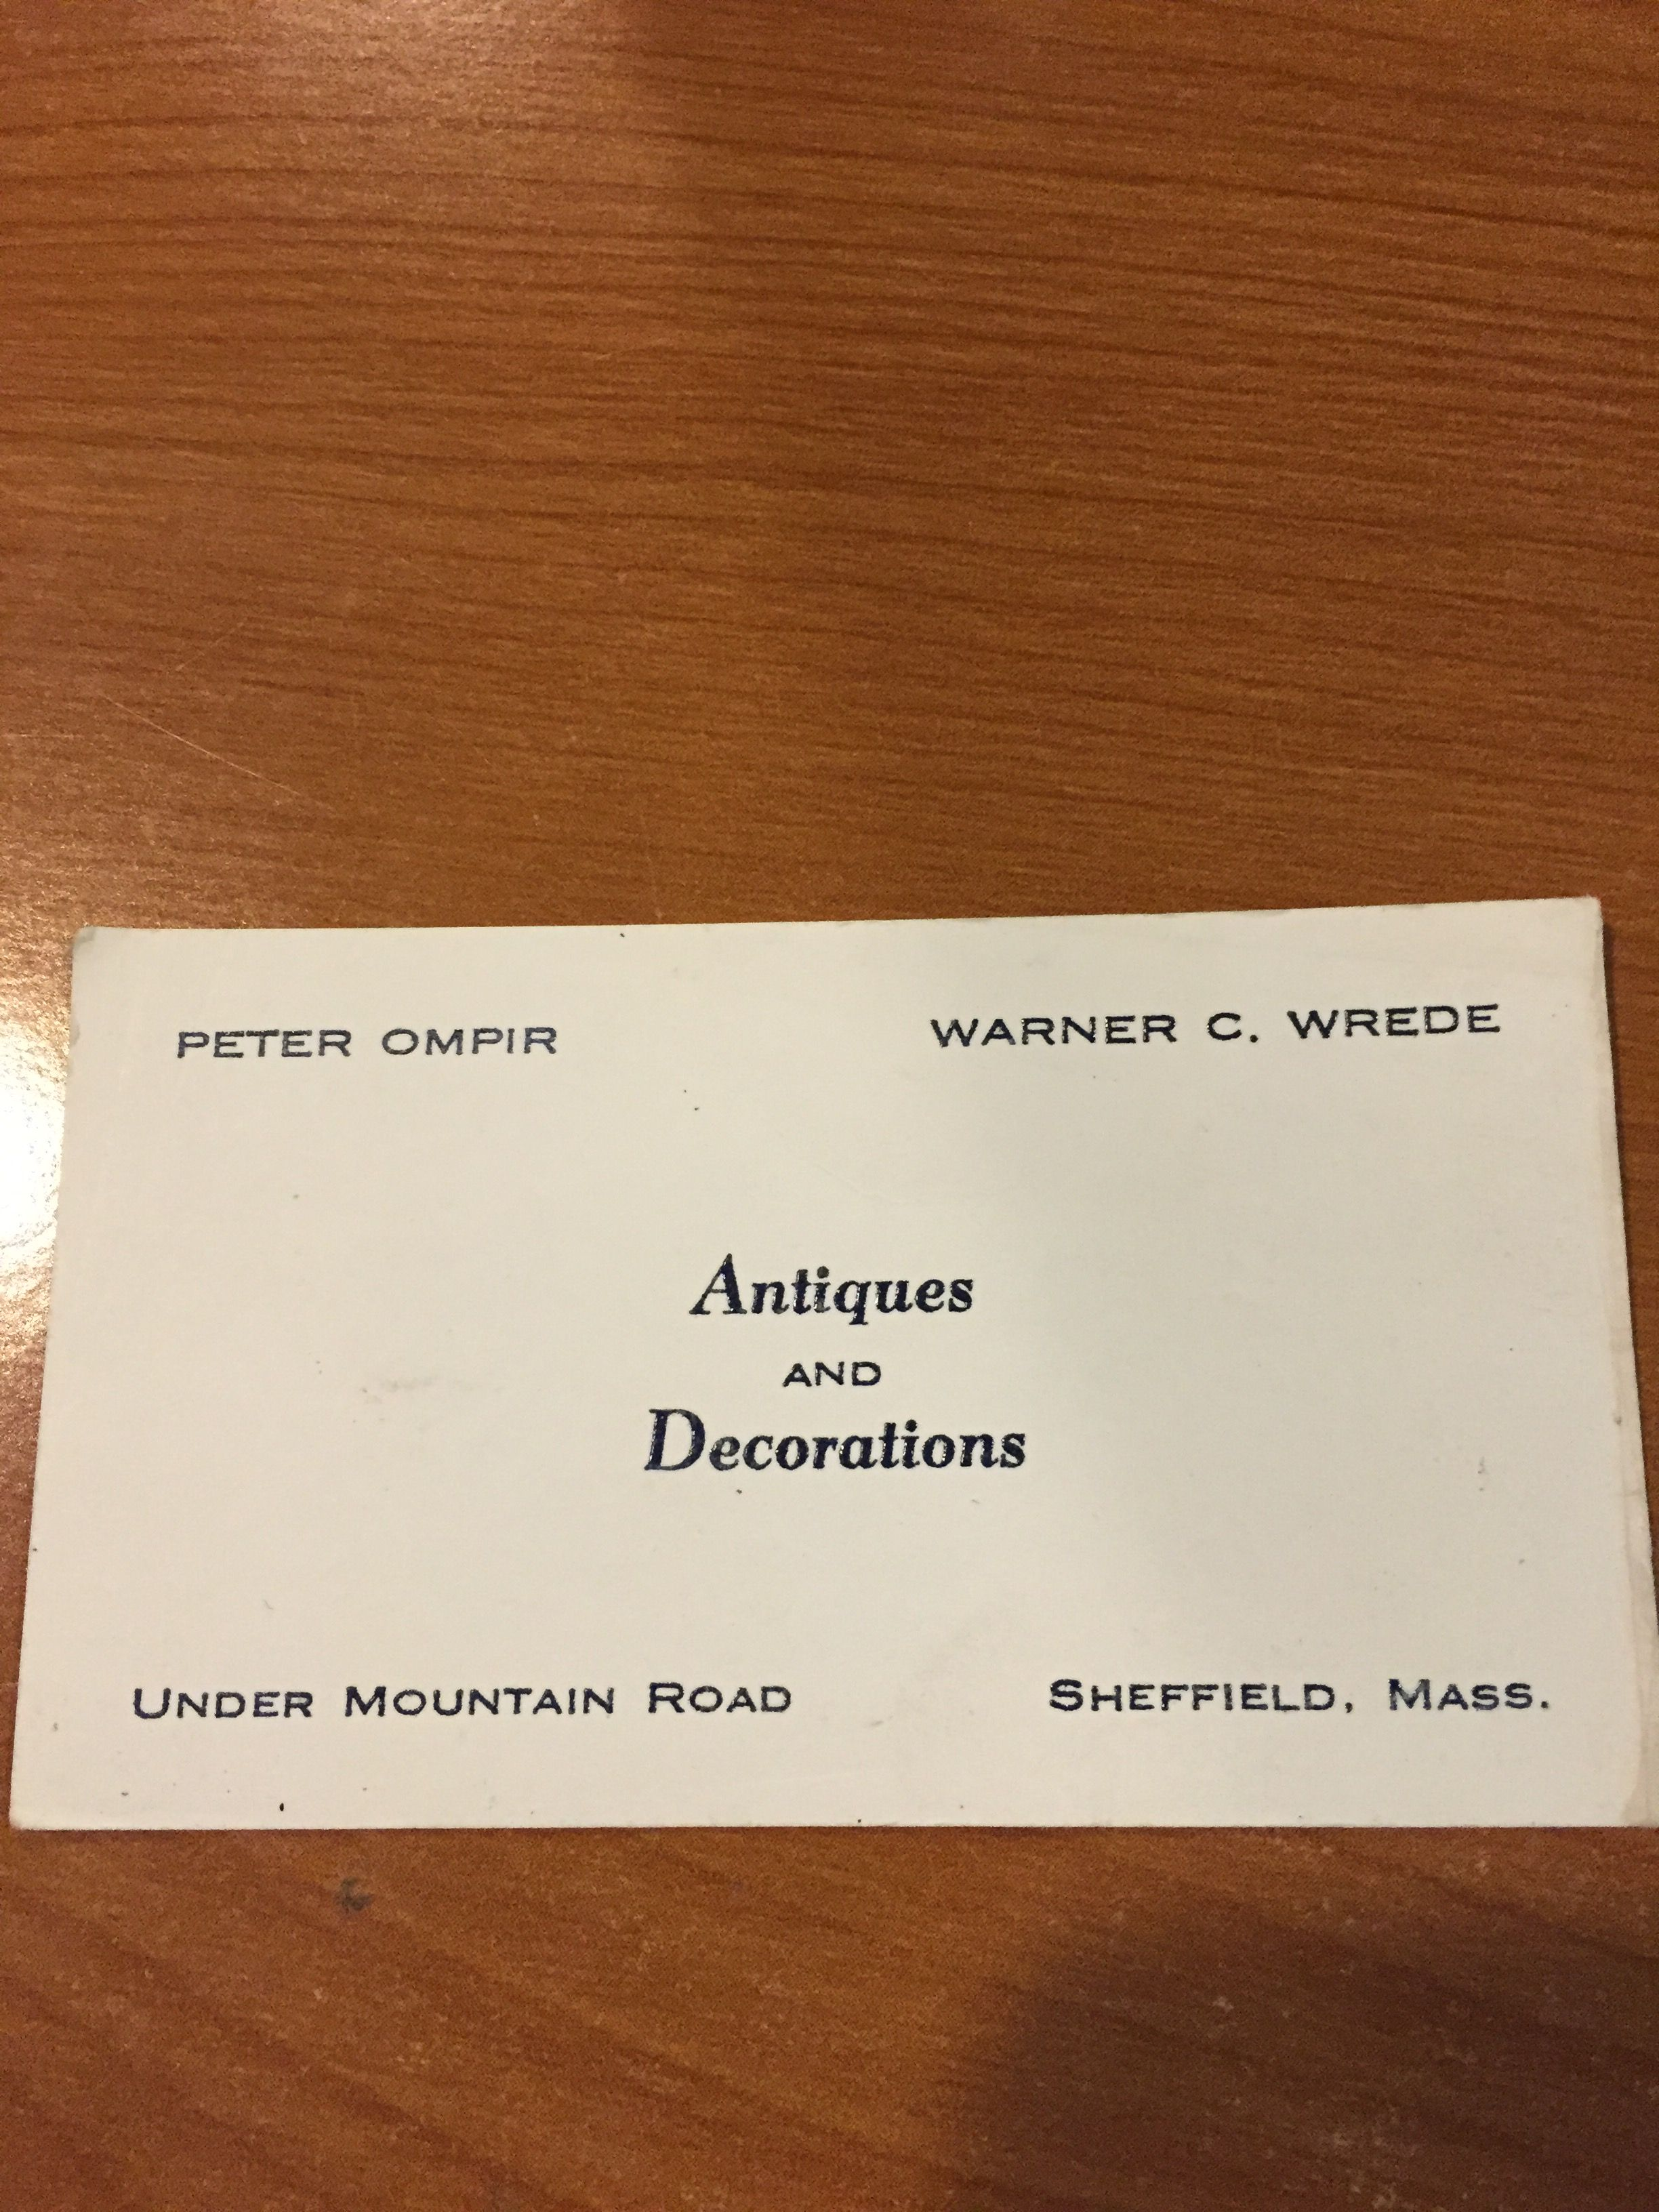 Peter Ompir/Warner Wrede Business Card | Peter Ompir Originals ...